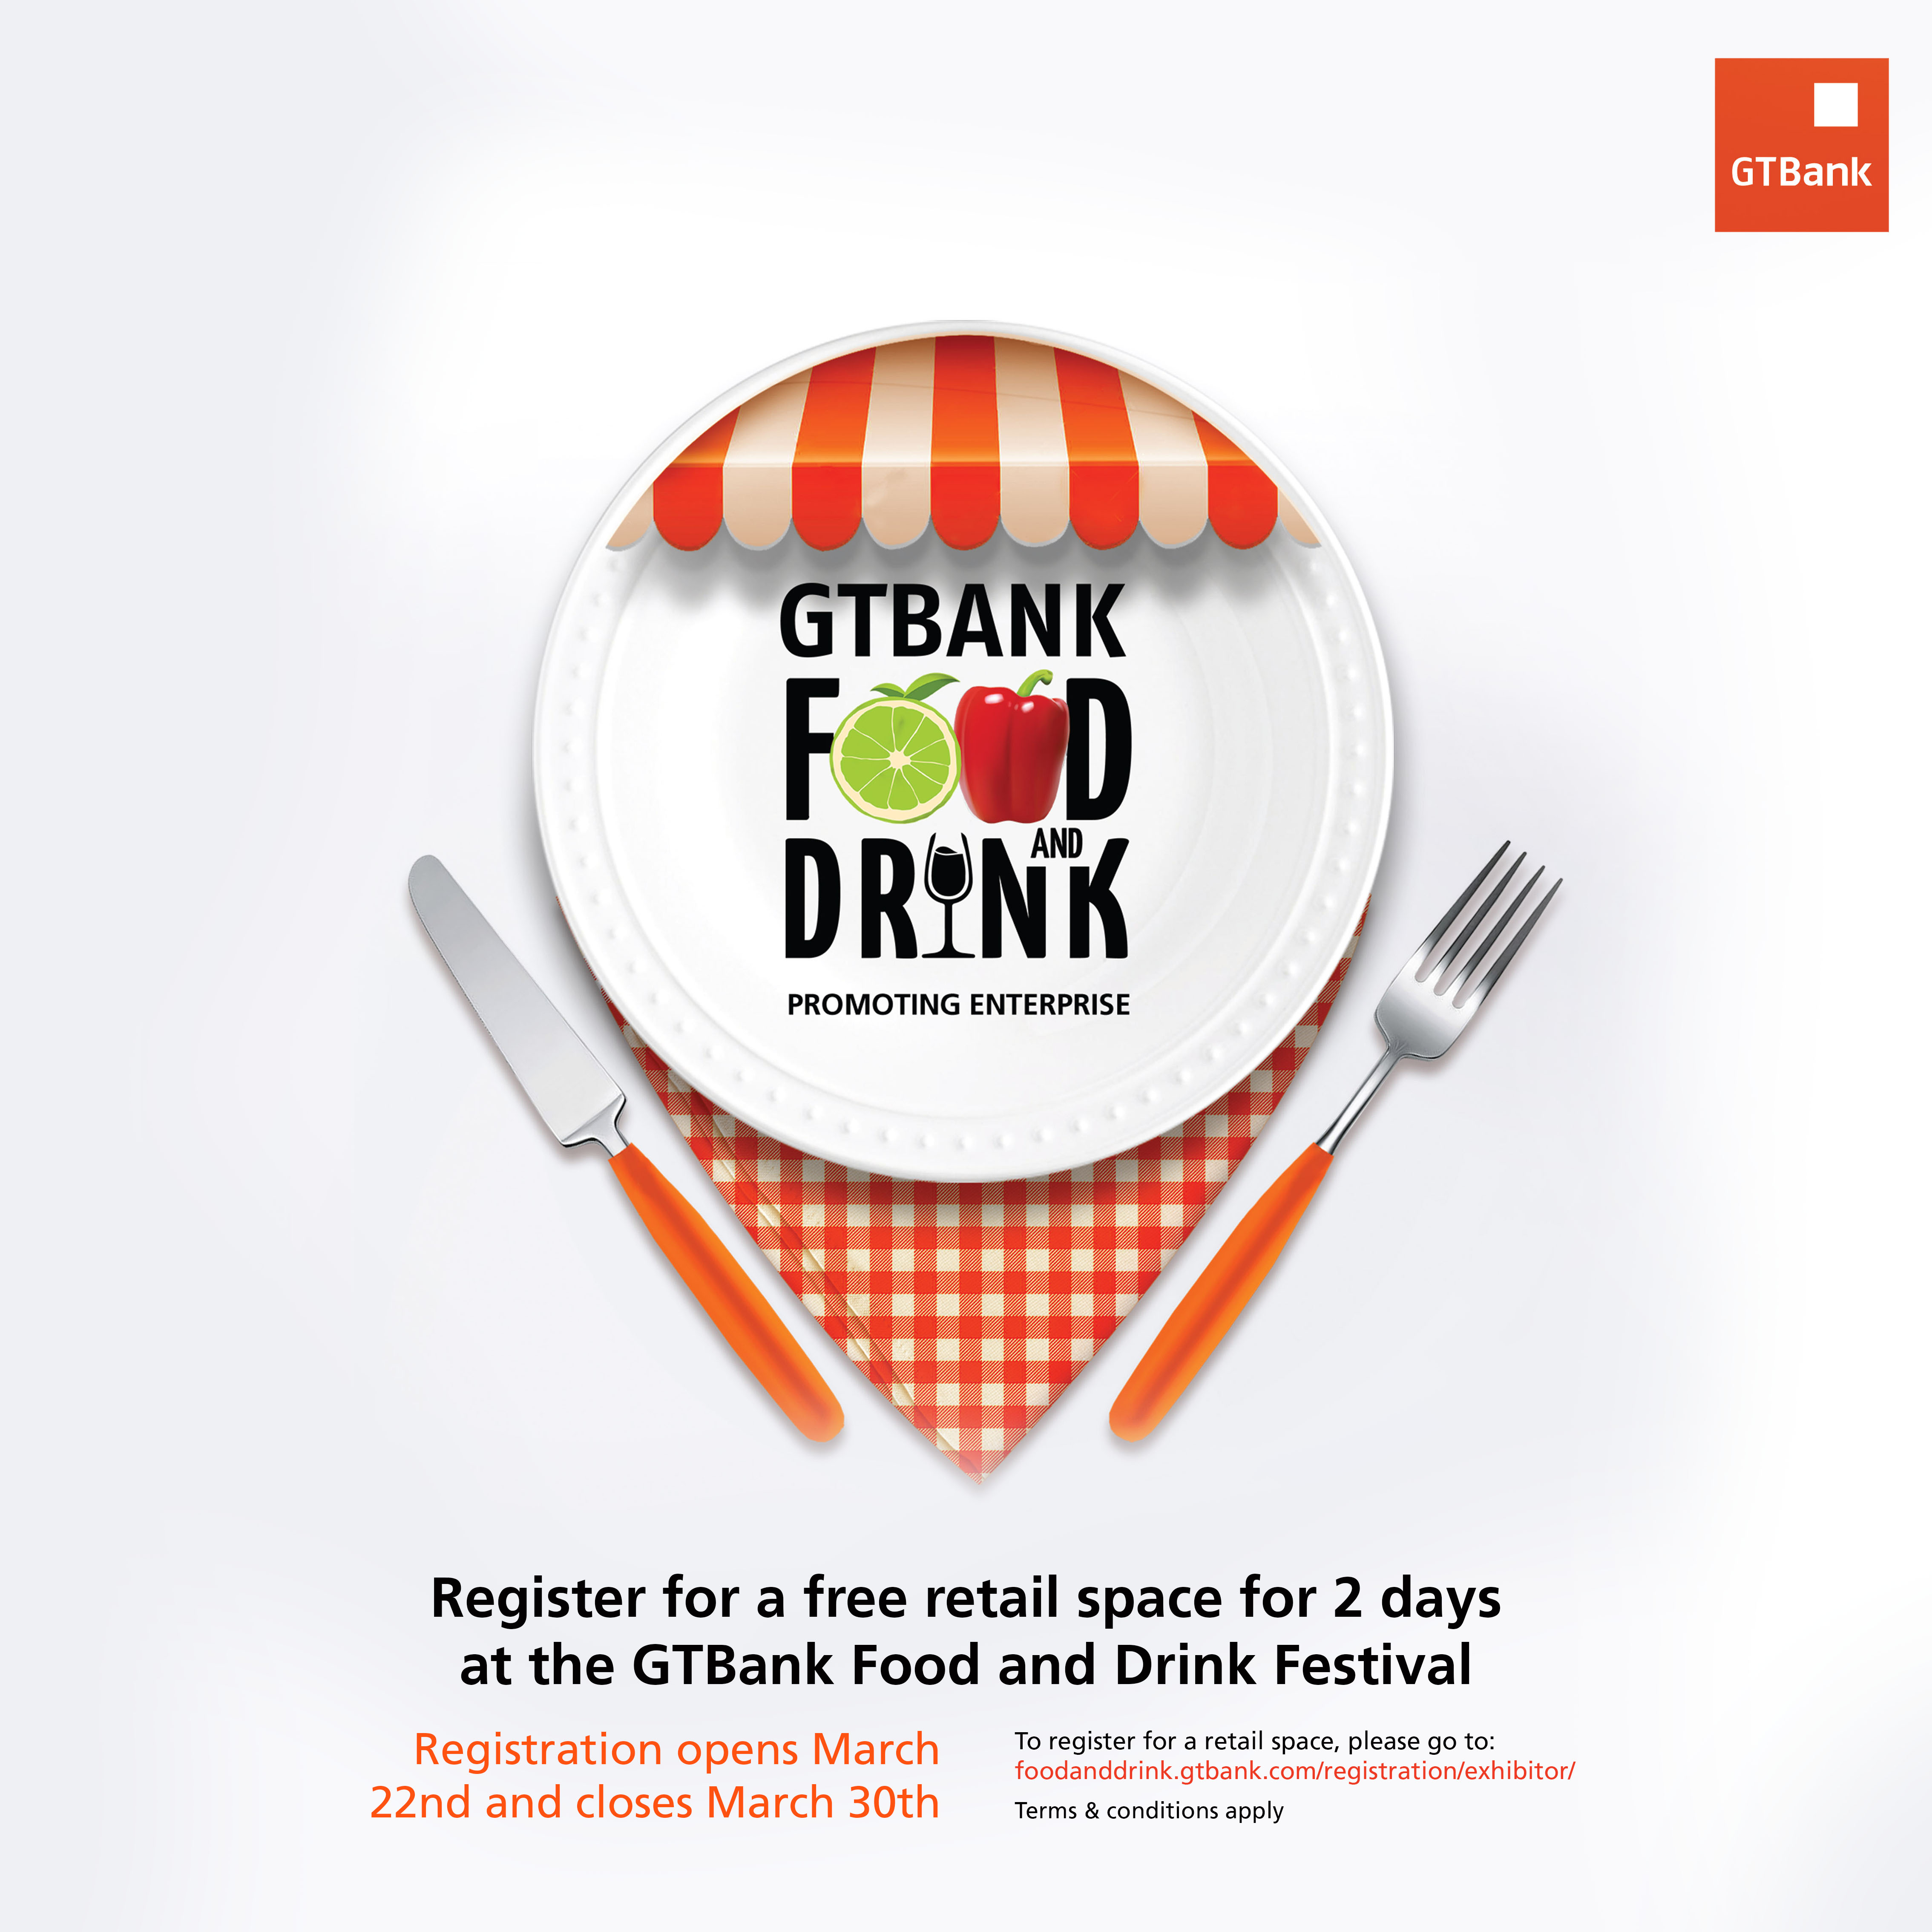 Are You a Food Vendor? Apply For A Free Stall At GTBank Food & Drink Festival | April 28th- May 1st